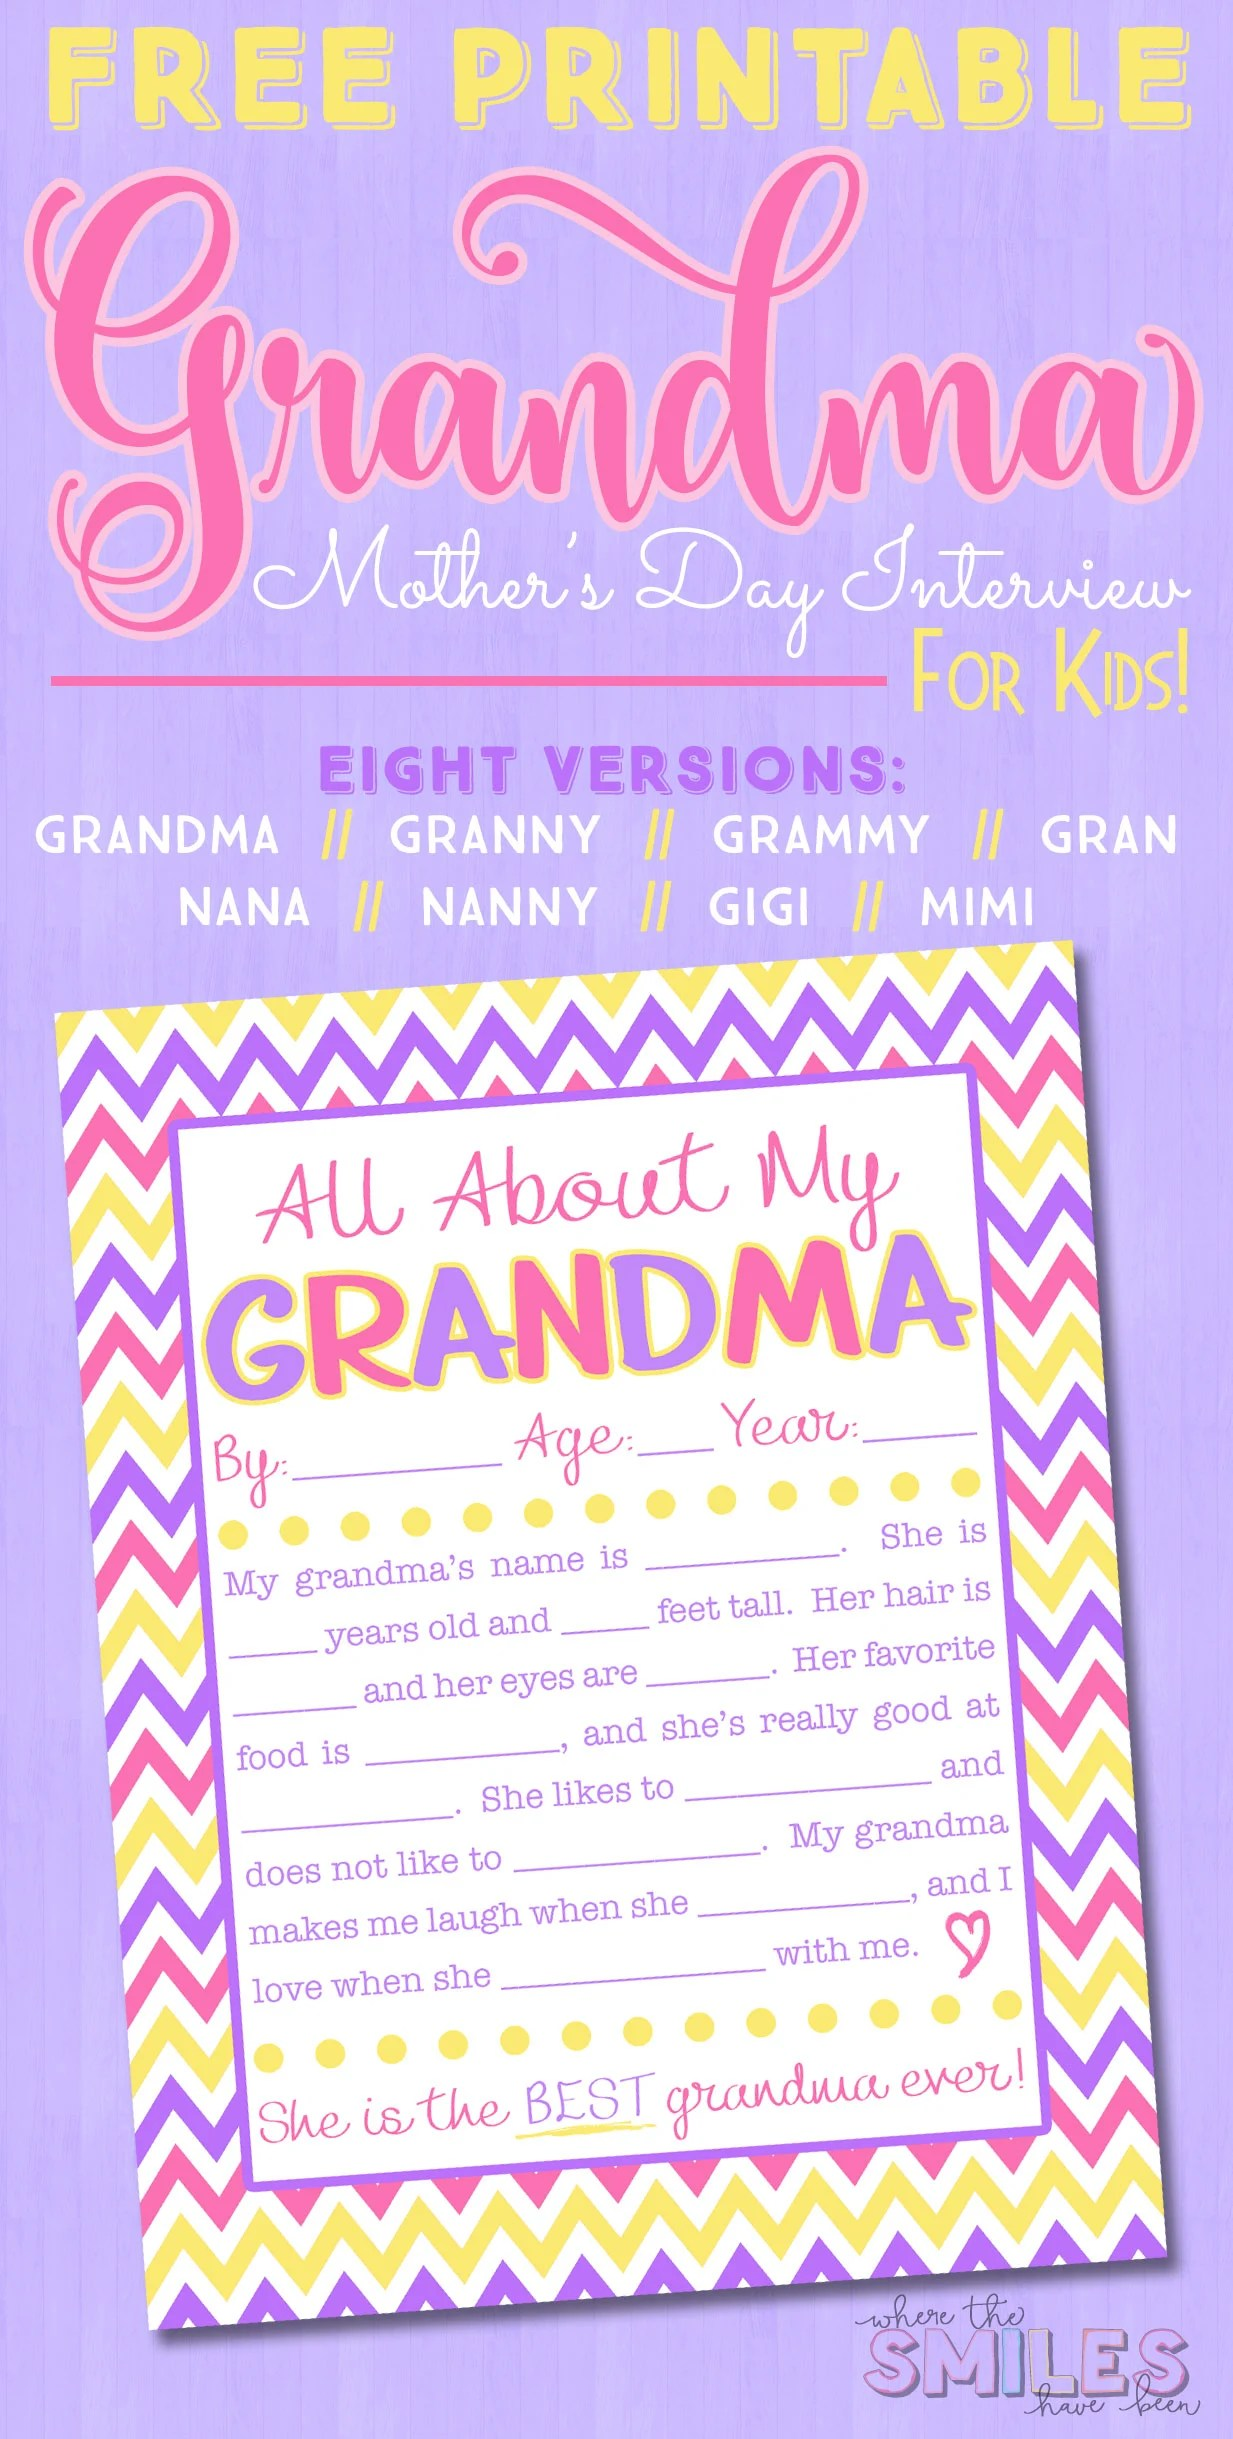 graphic about Free Printable Images referred to as All Pertaining to My Grandma Job interview with Cost-free Printable 8